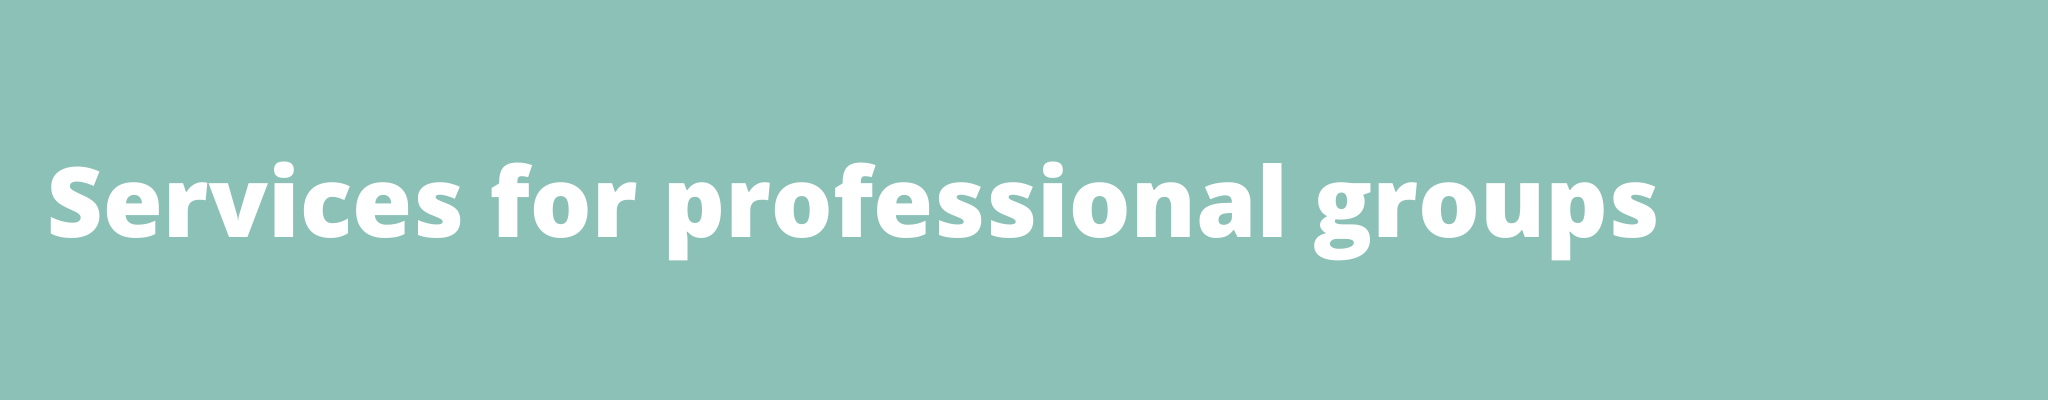 Services for professional groups